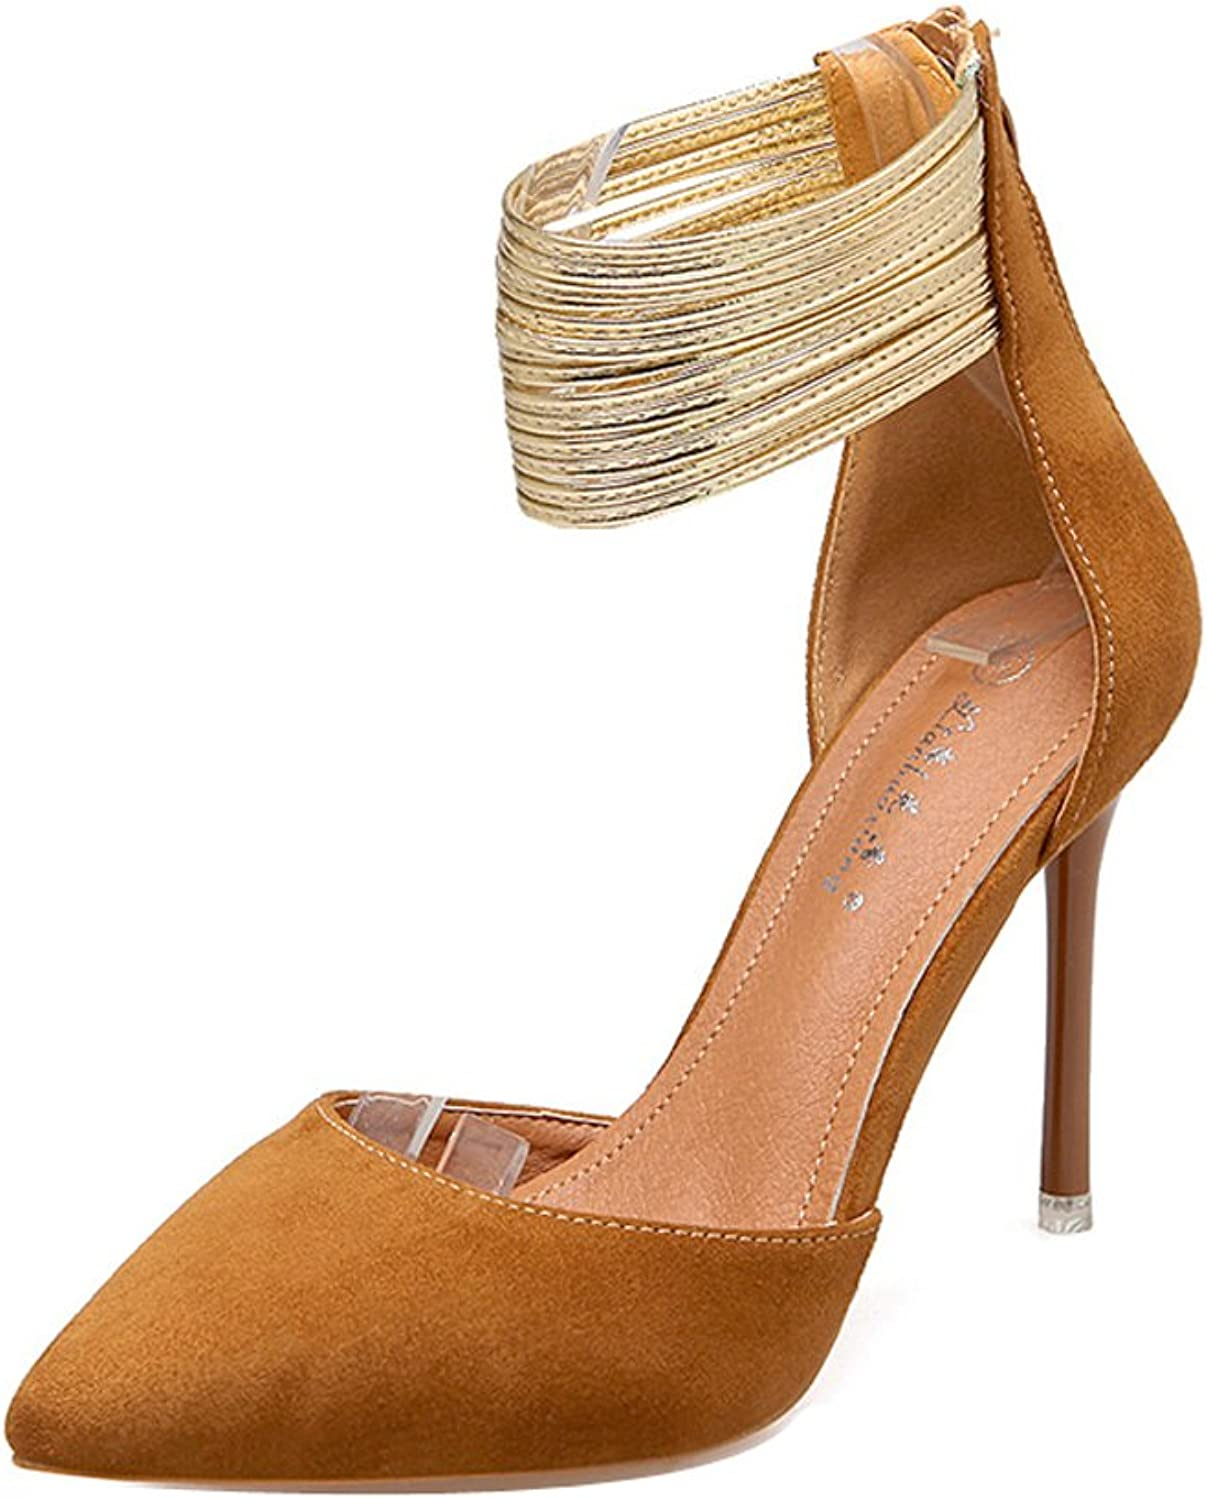 Ladola Womens Ankle-Strap Pointed-Toe Solid Suede Pumps shoes